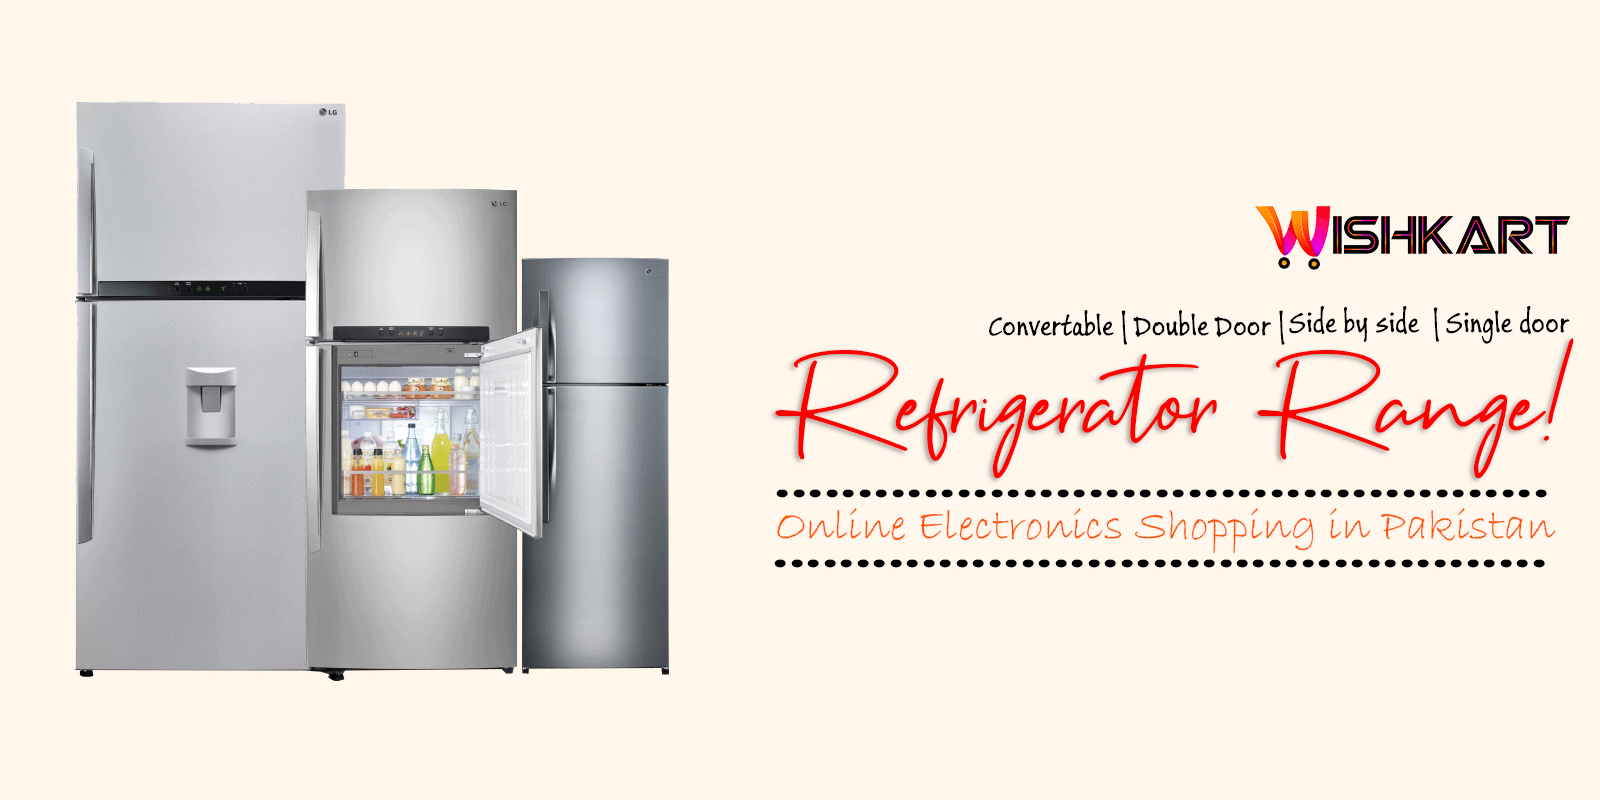 Refrigerator Shop Online Pakistan Shop Refrigerator Haier Refrigerators Double Door Fridge